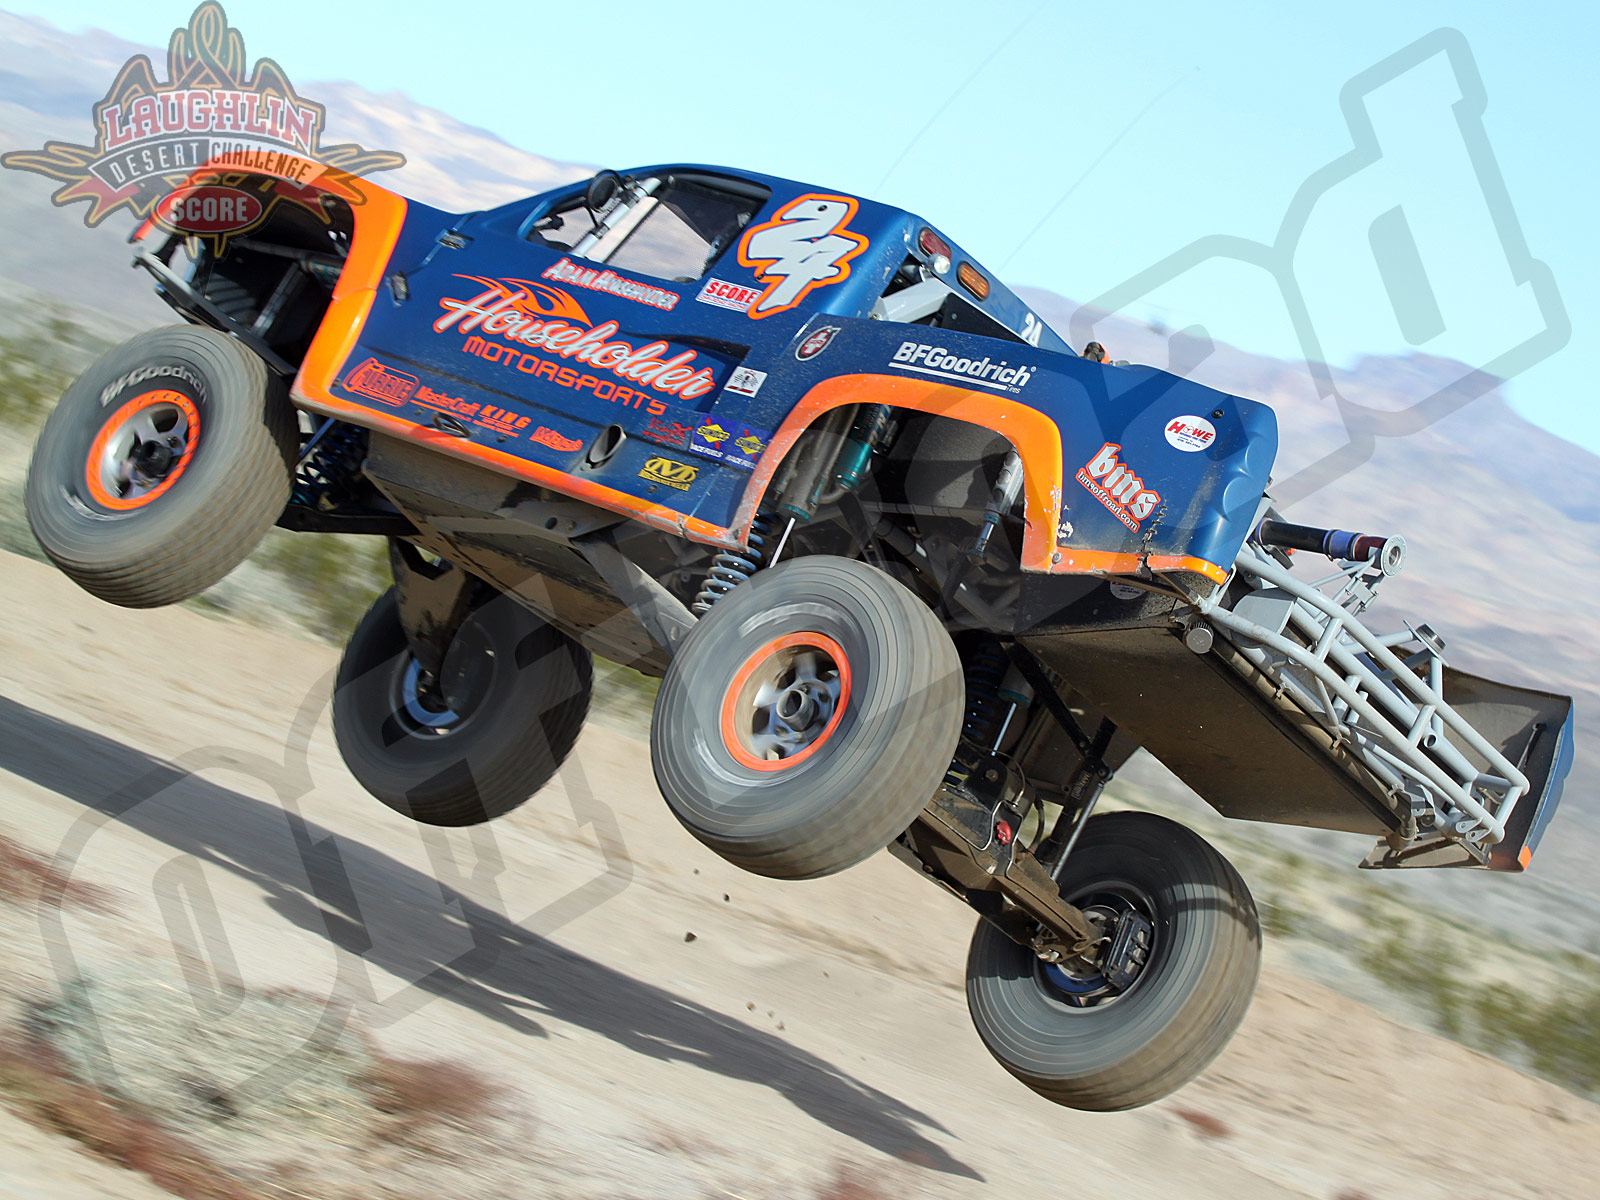 030311or 6807+2011 score laughlin desert challenge+trophy trucks sunday